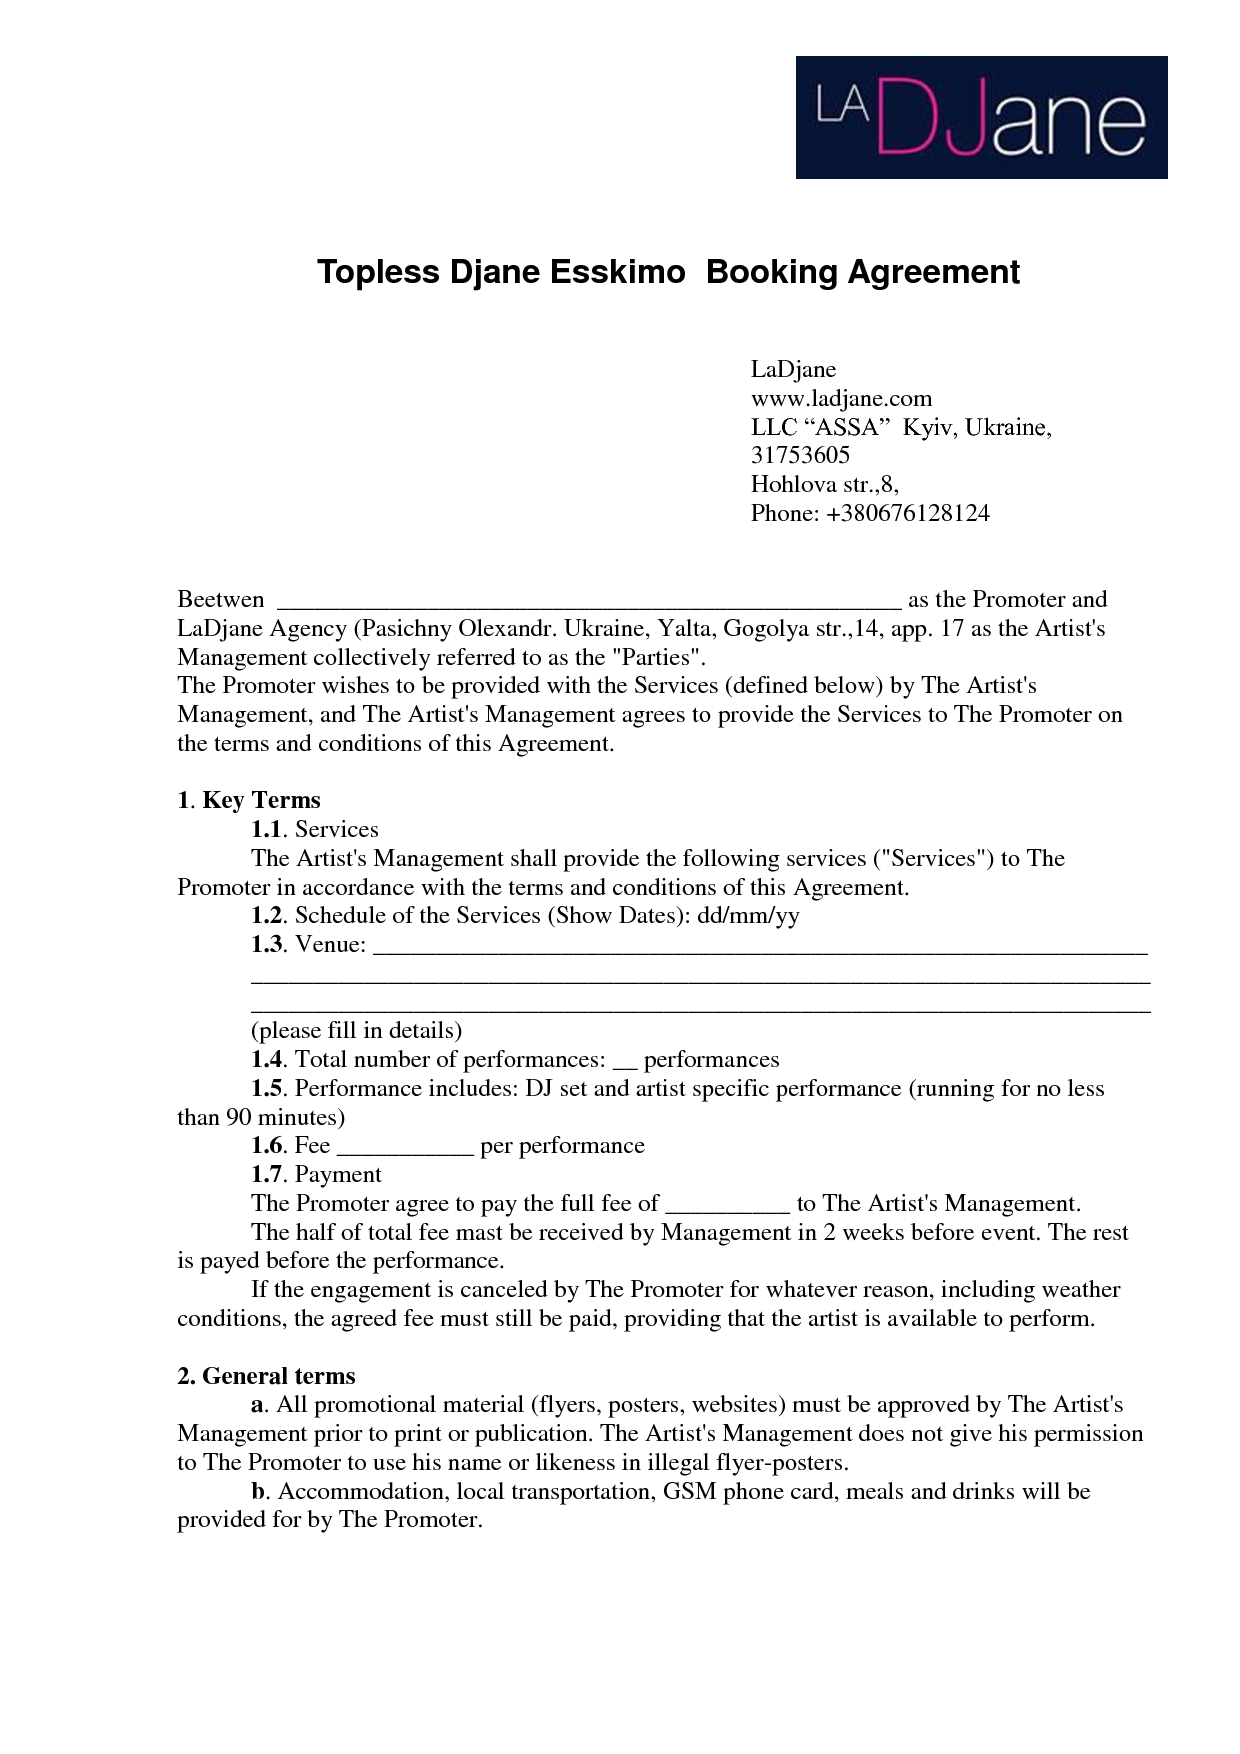 Agreements And Contracts Book images dj agreement – Booking Agent Contract Template